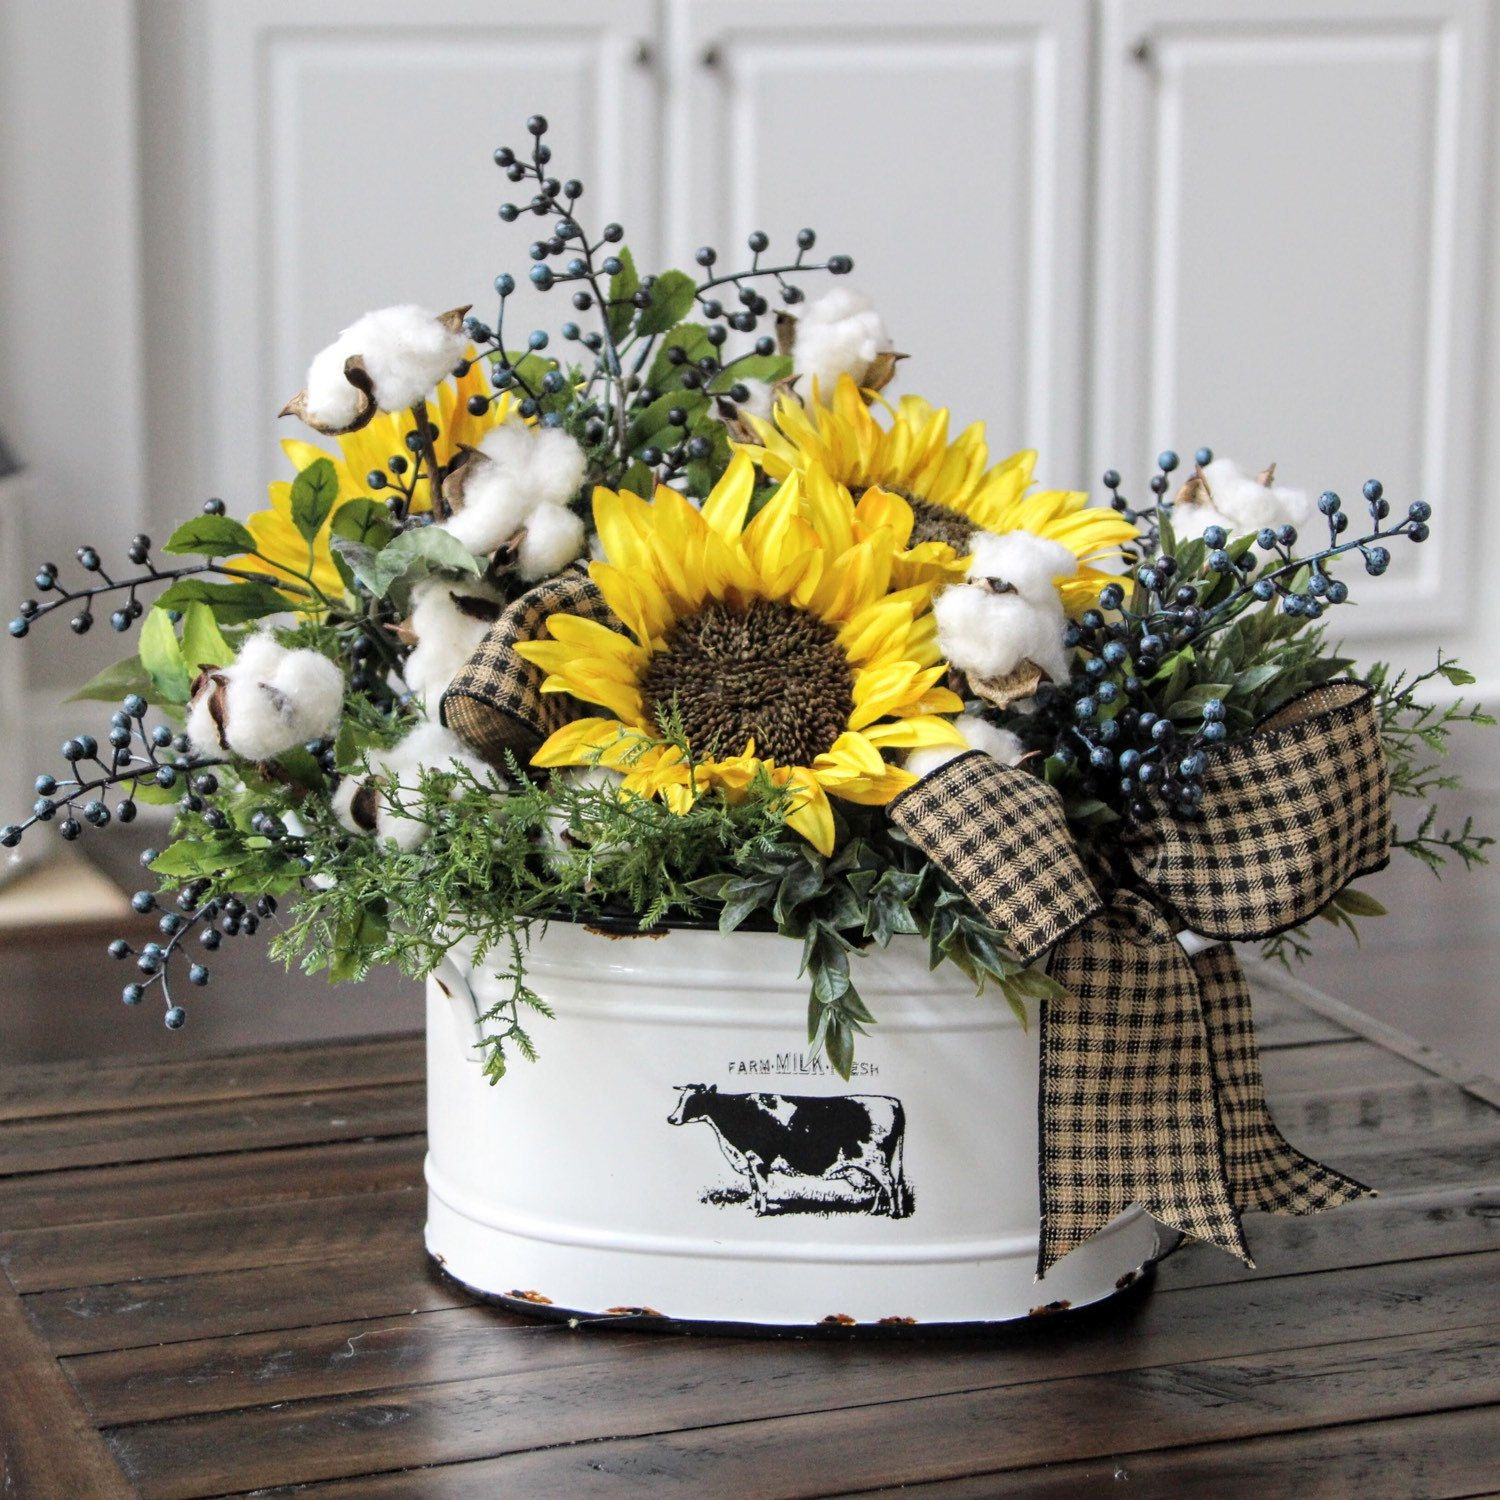 Sweet Sunflowers Add A Little Farmhouse Country To Your